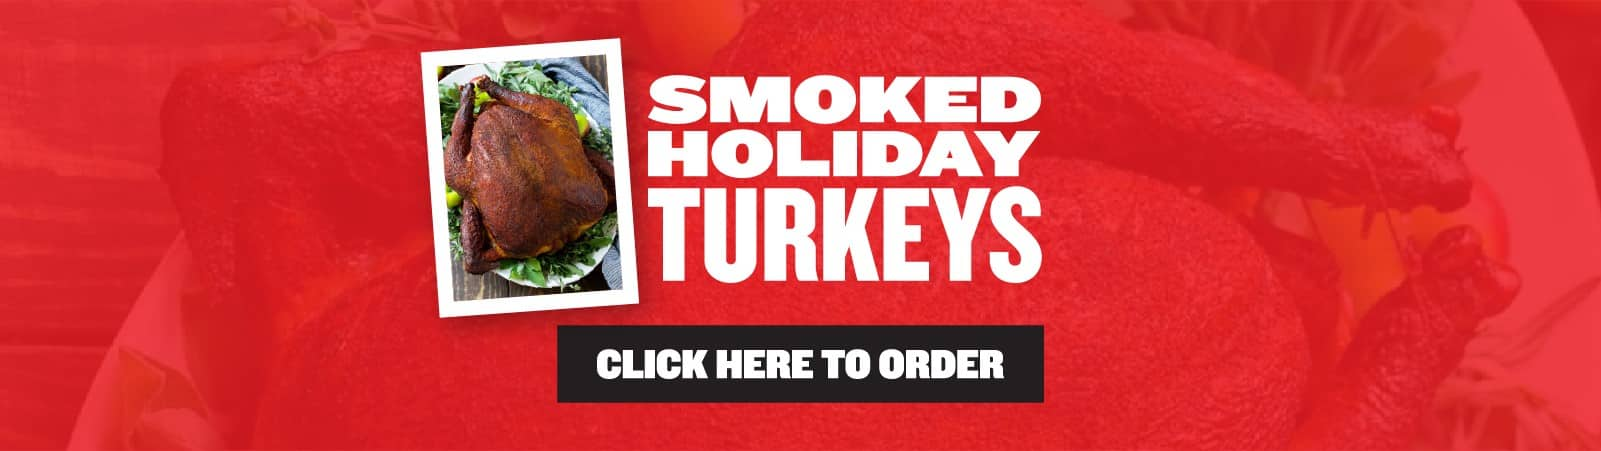 Smoked Holiday Turkey sale